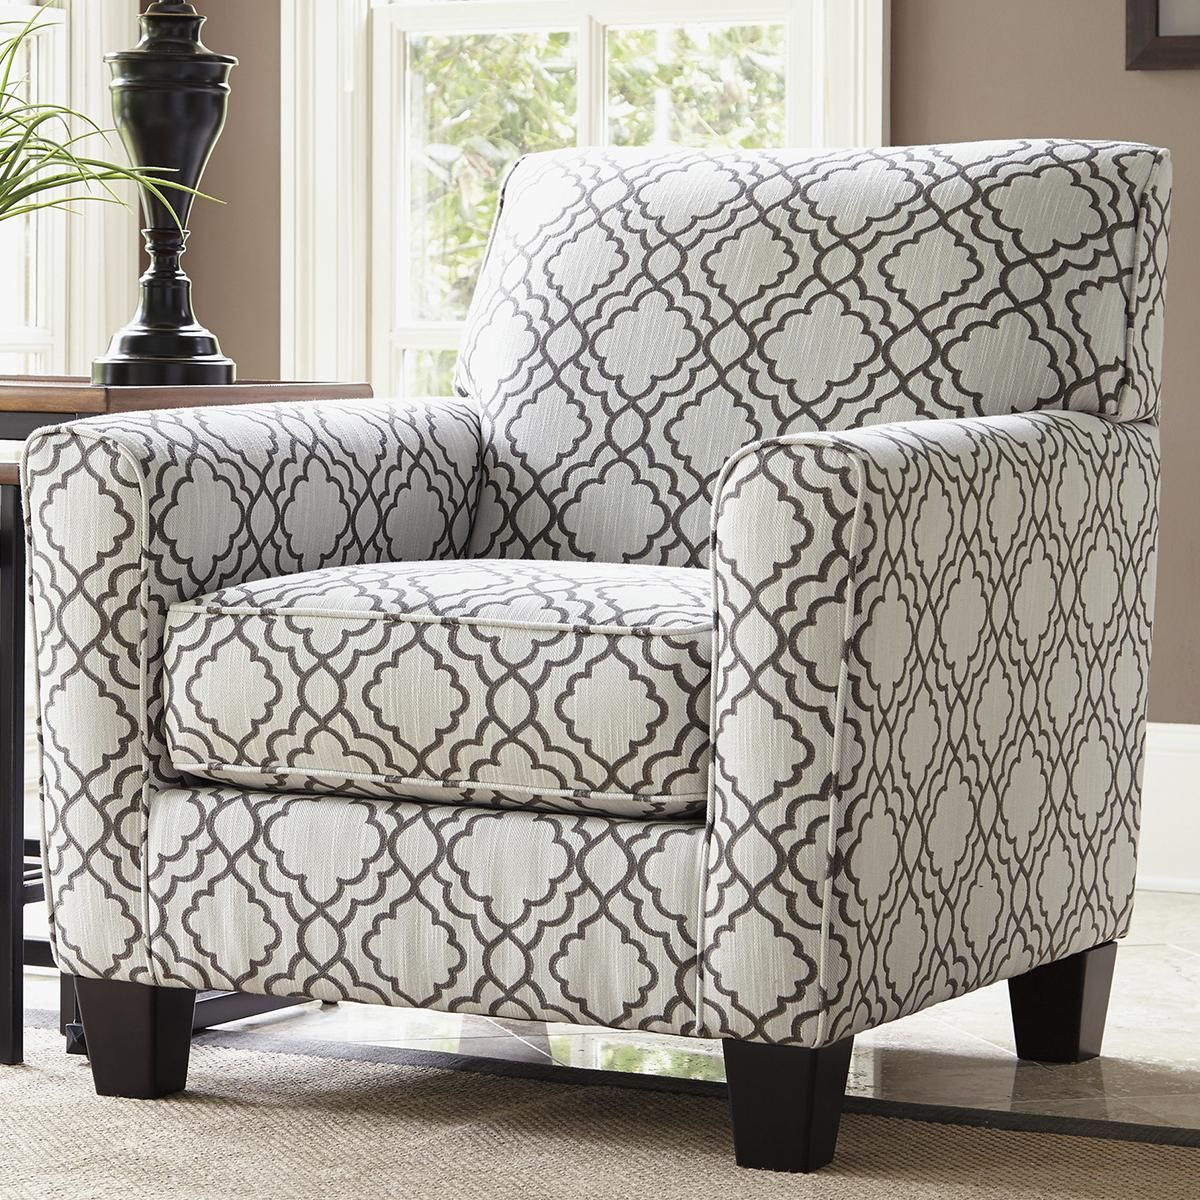 Excellent Signature Design By Ashley Farouh Accent Chair In Pearl Short Links Chair Design For Home Short Linksinfo